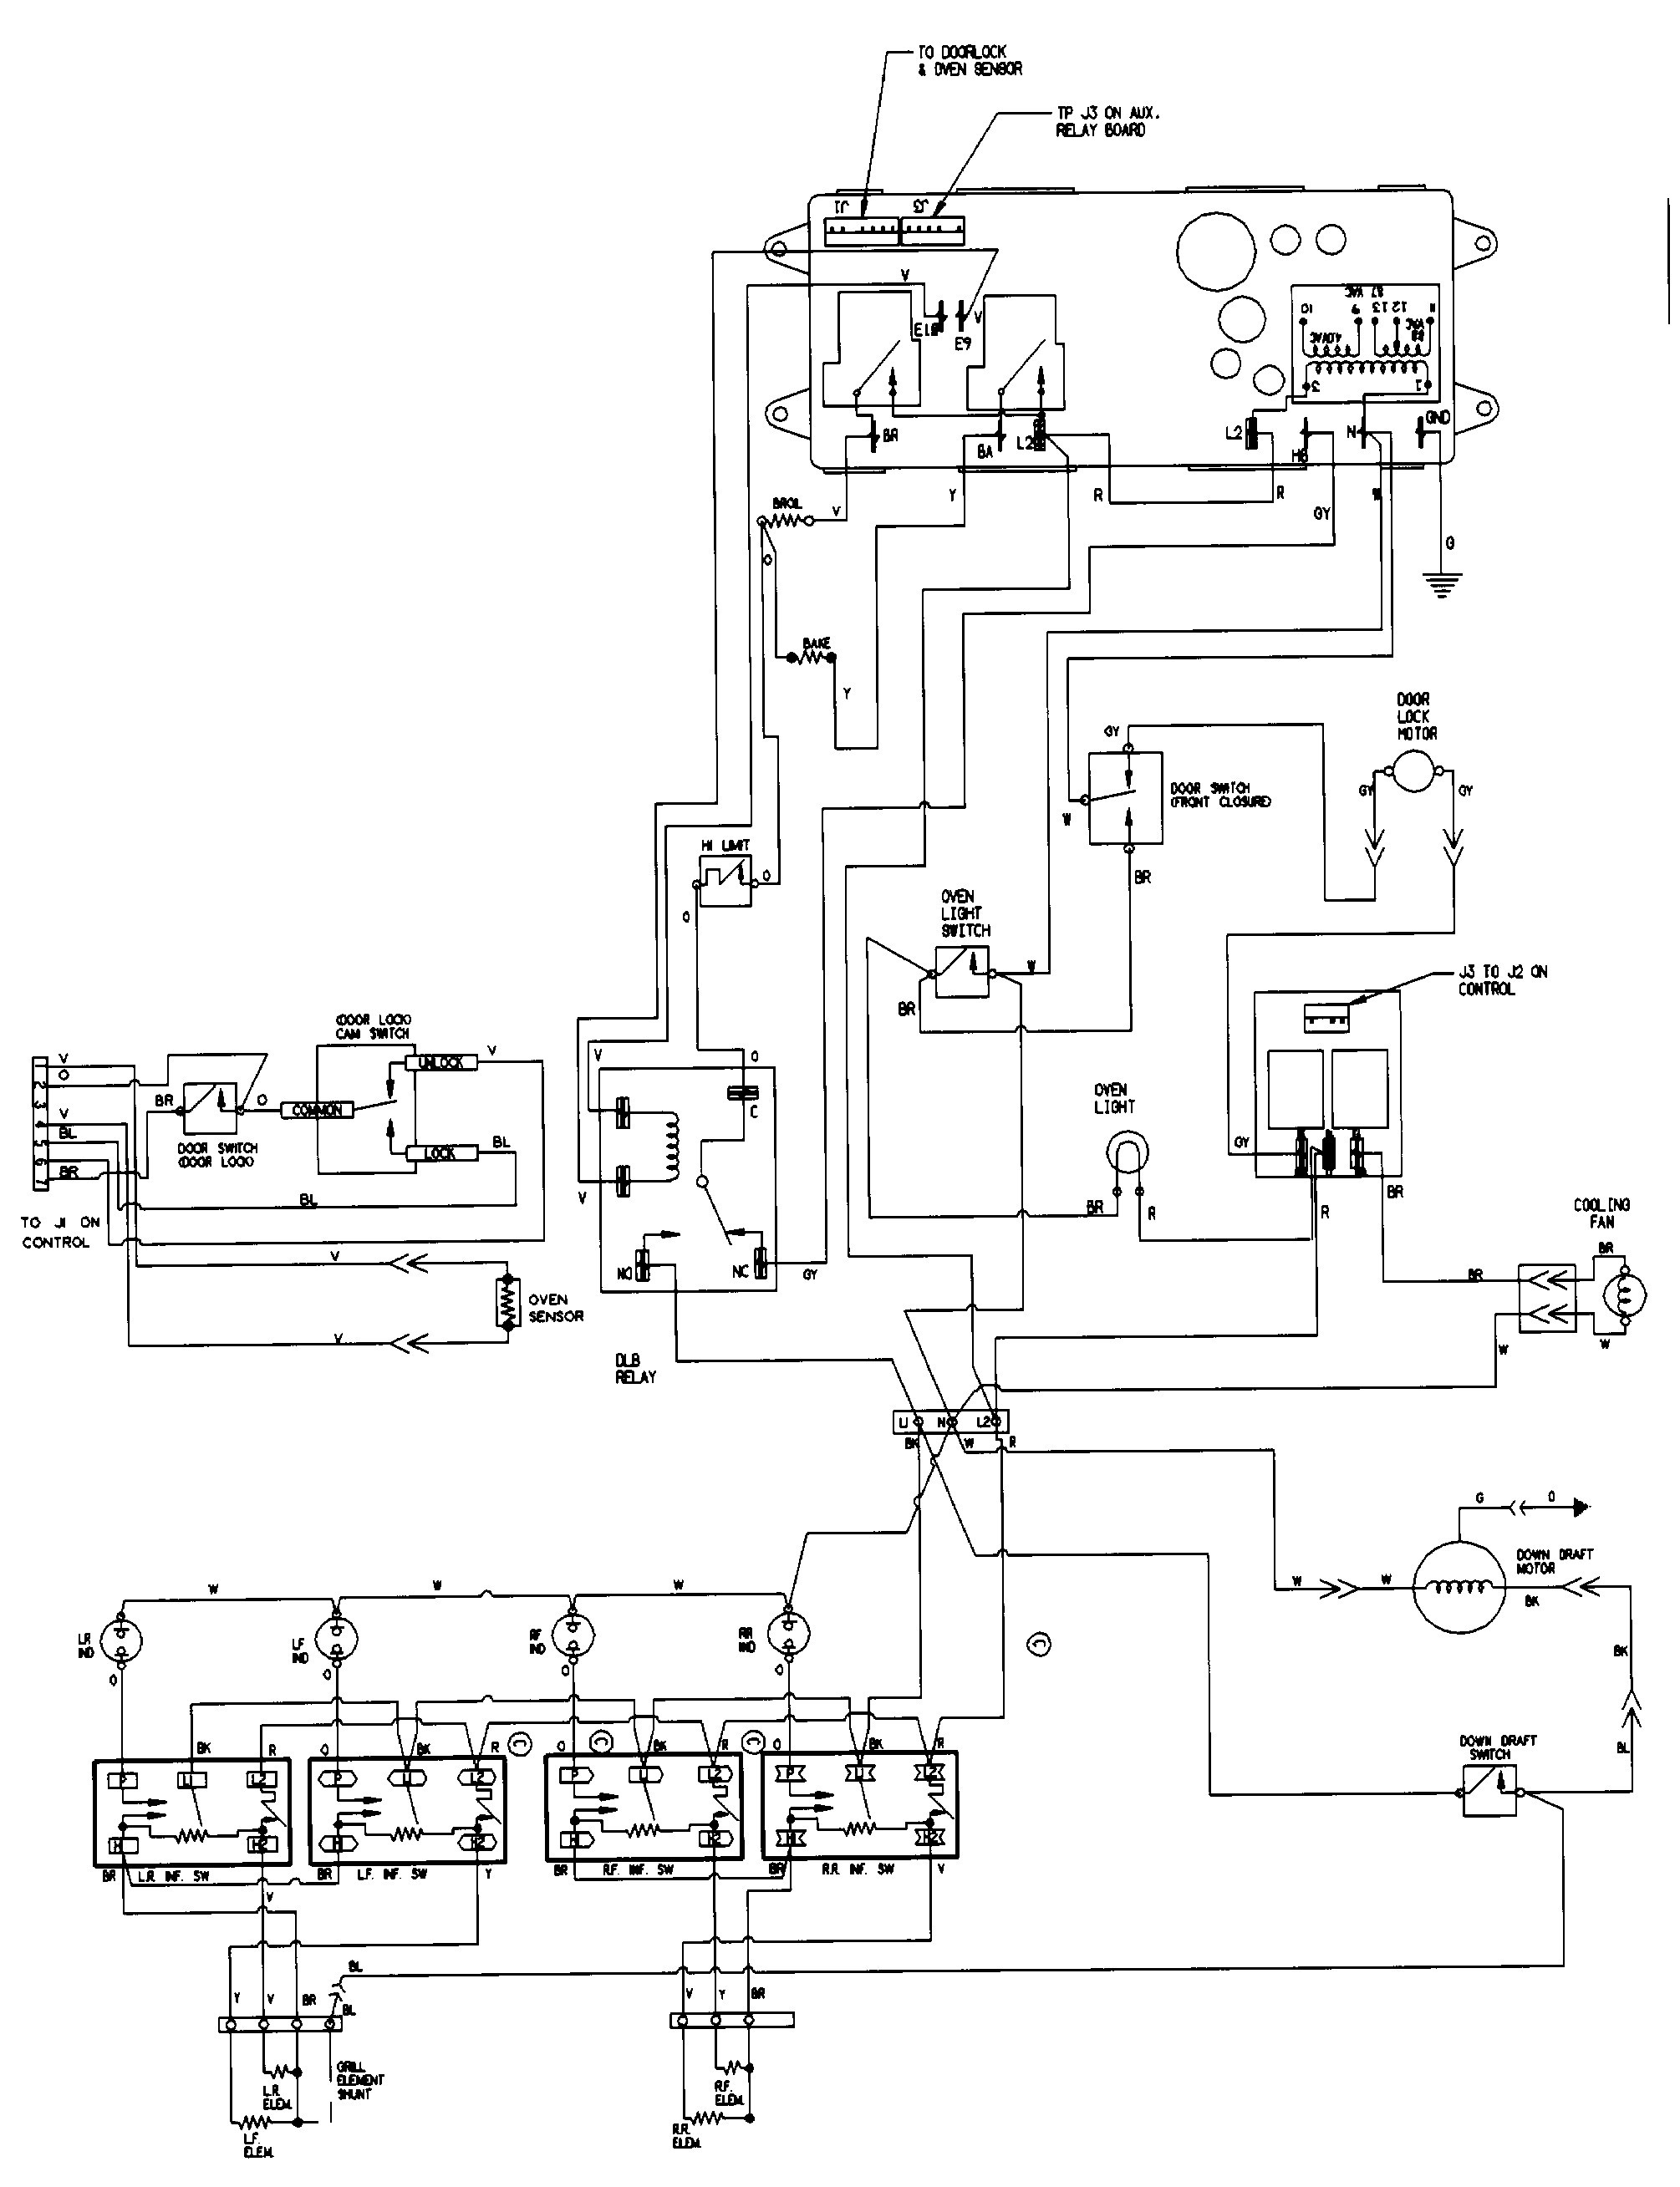 3 pin plug wiring diagram nz